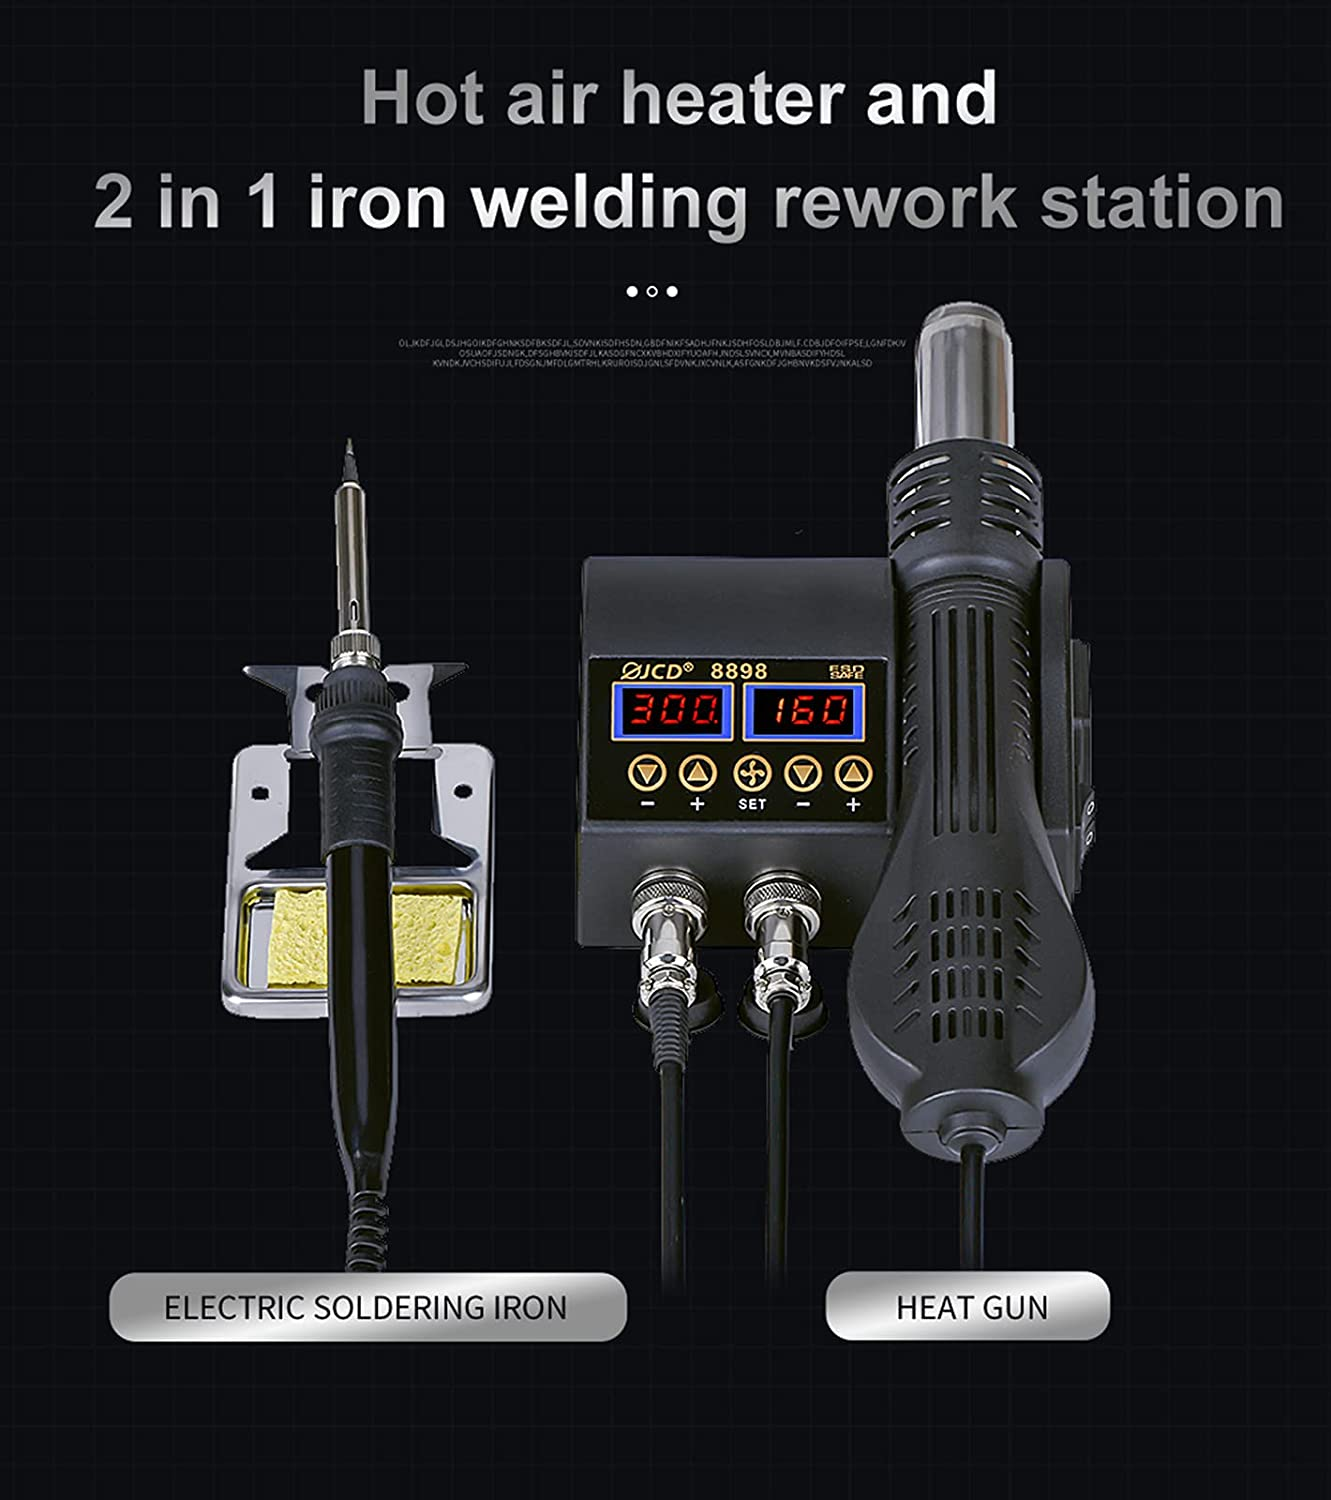 Lailuaxoa Soldering Station 750w Max 80% OFF 2 in Digital Electronic Ranking TOP5 Repa 1